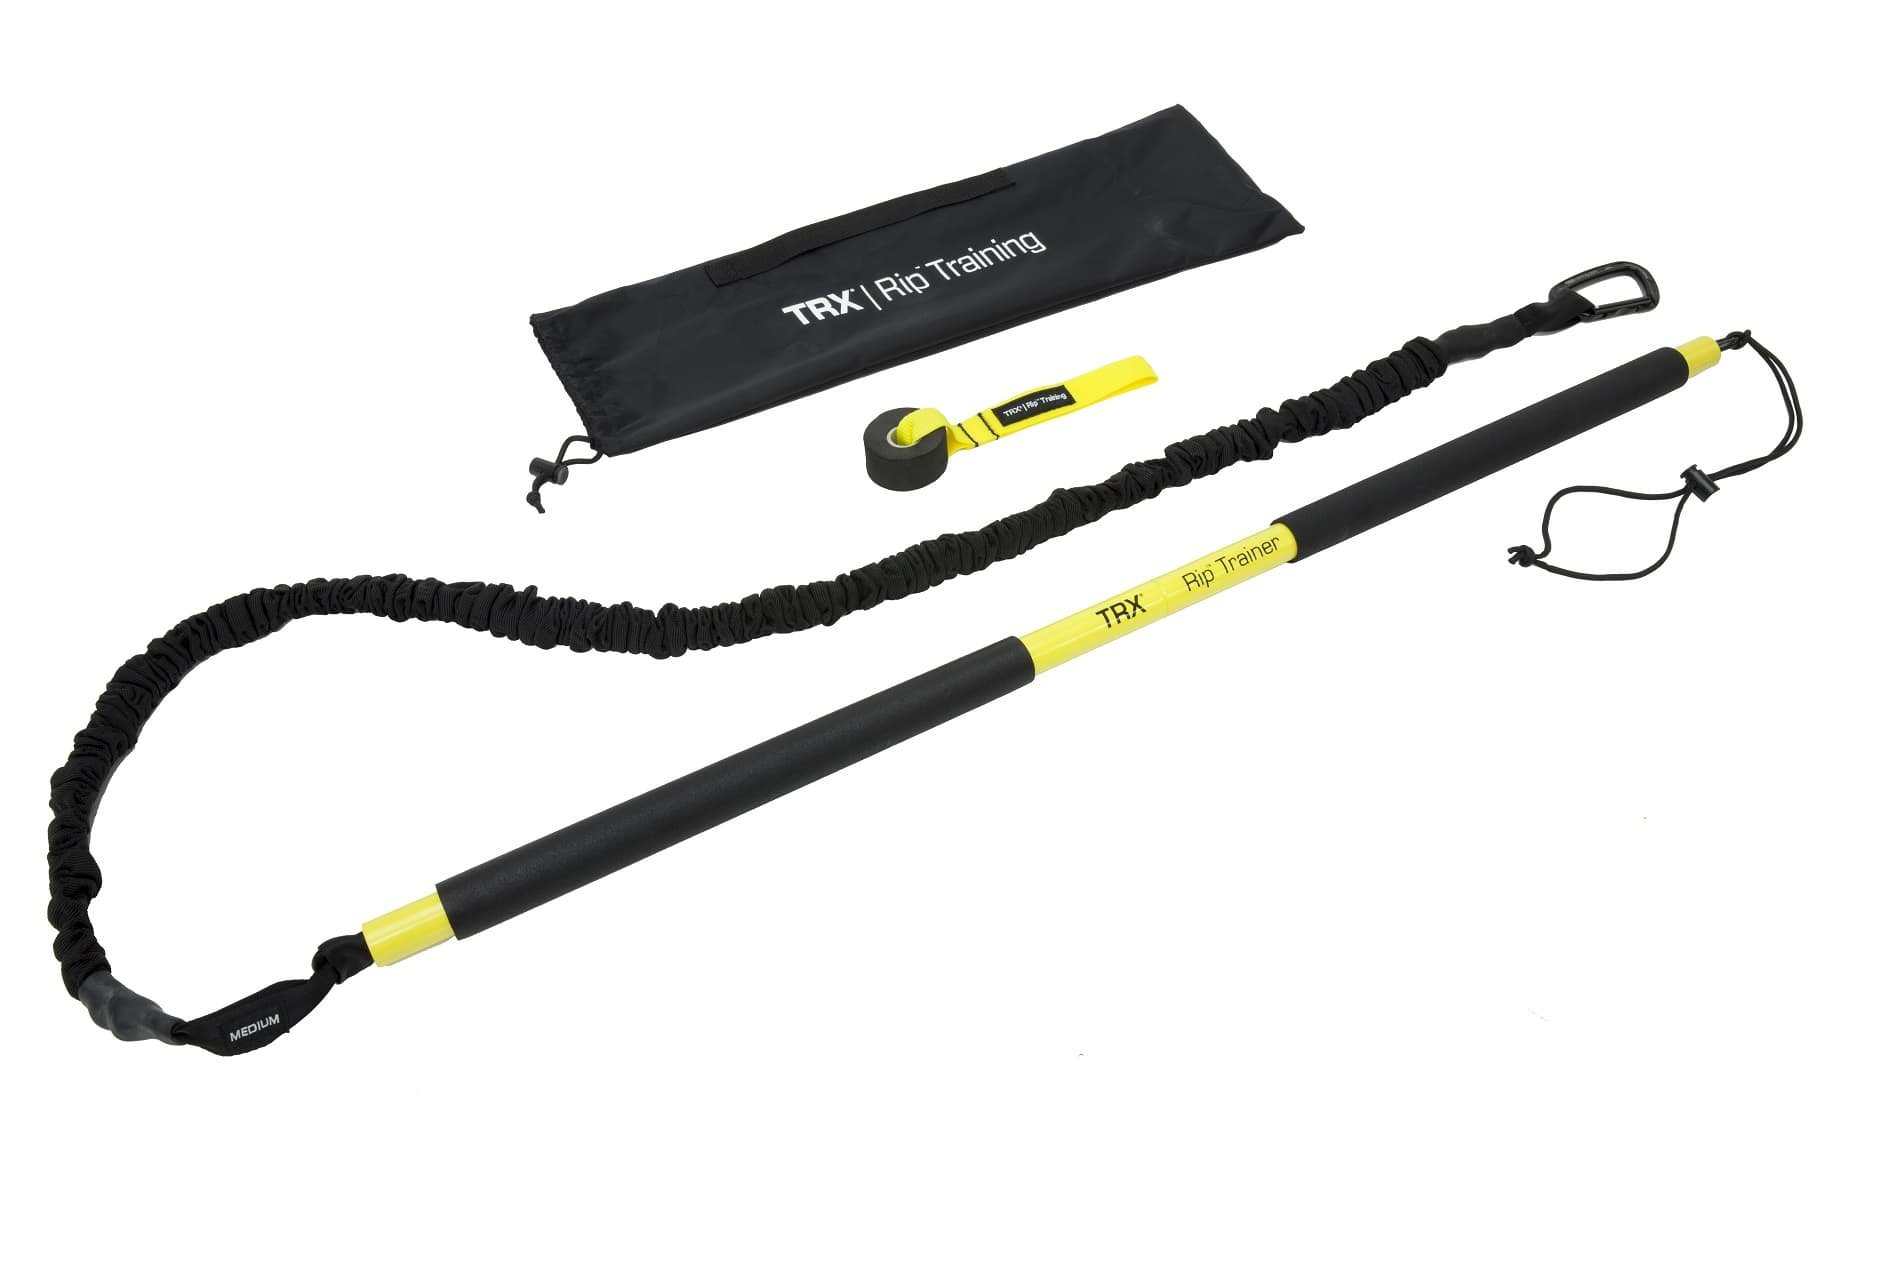 TRX Training - RIP Trainer Basic Kit, Essential for Strengthening the Core and Increasing Cardiovascular endurance by TRX